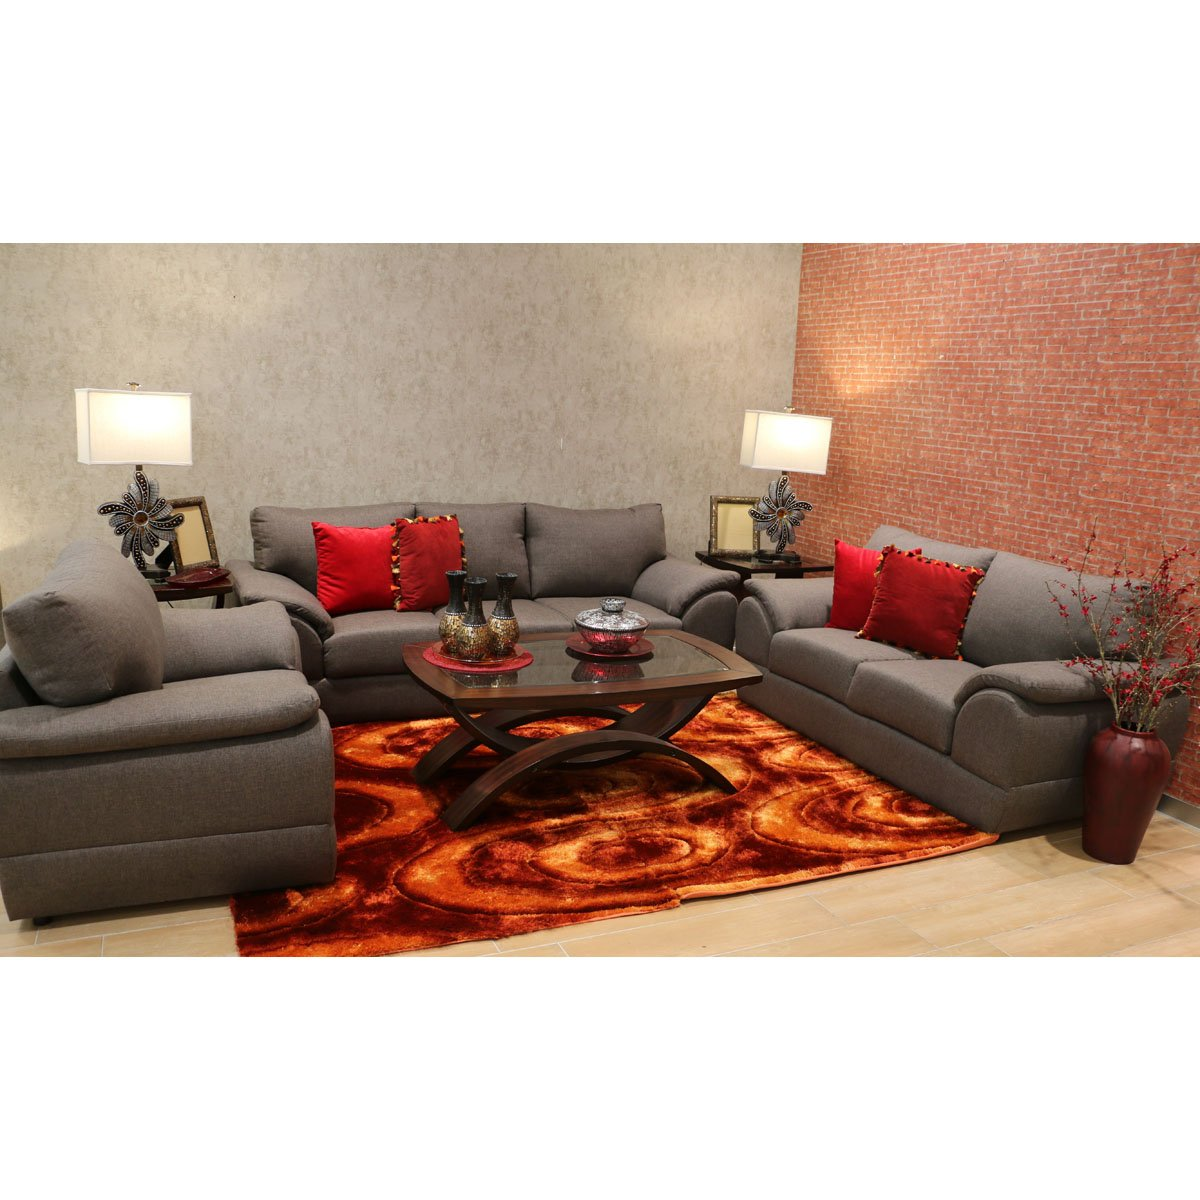 Sof kali salas tangerina color gris sears com mx me for Muebles de sala sears